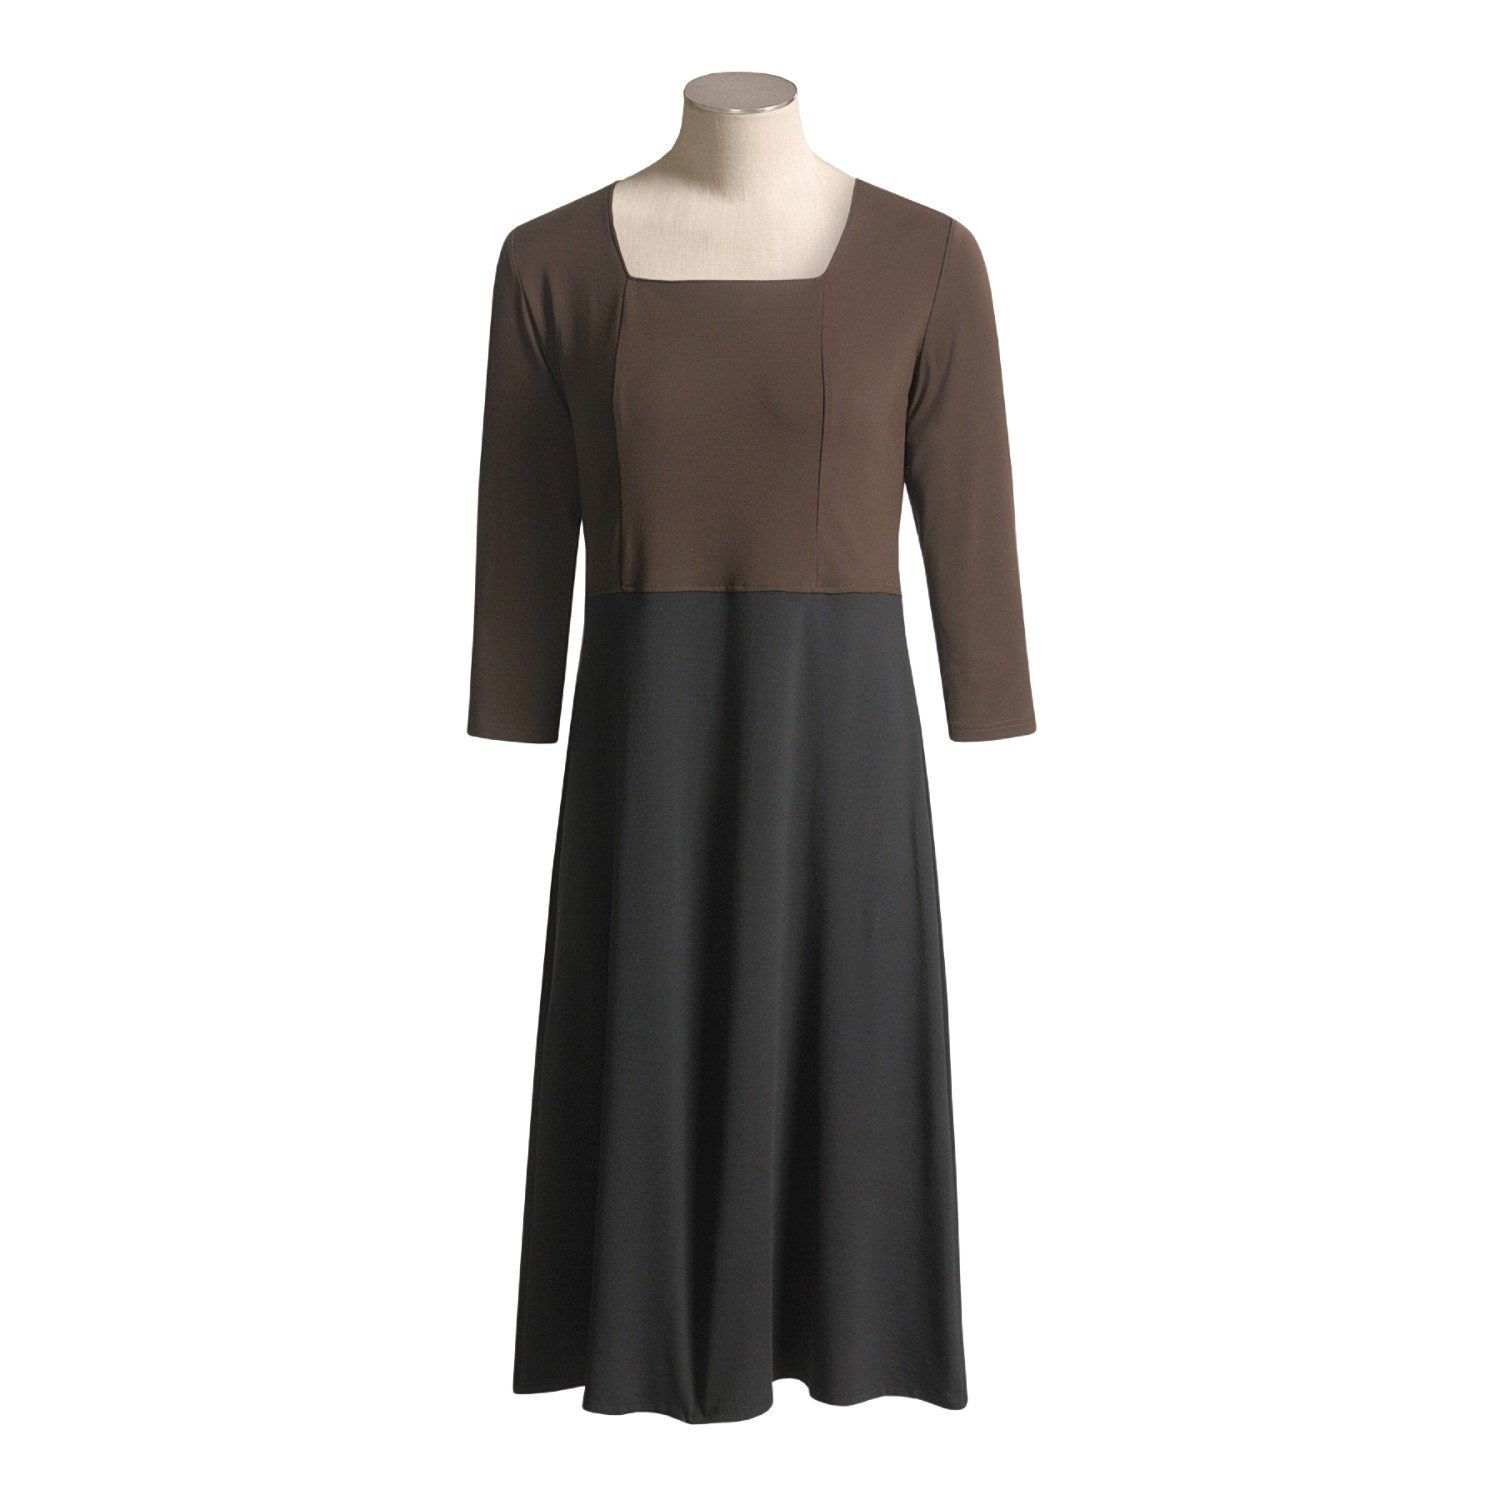 Travelsmith Colorblock Travel Dress For Women 29500 Save 49